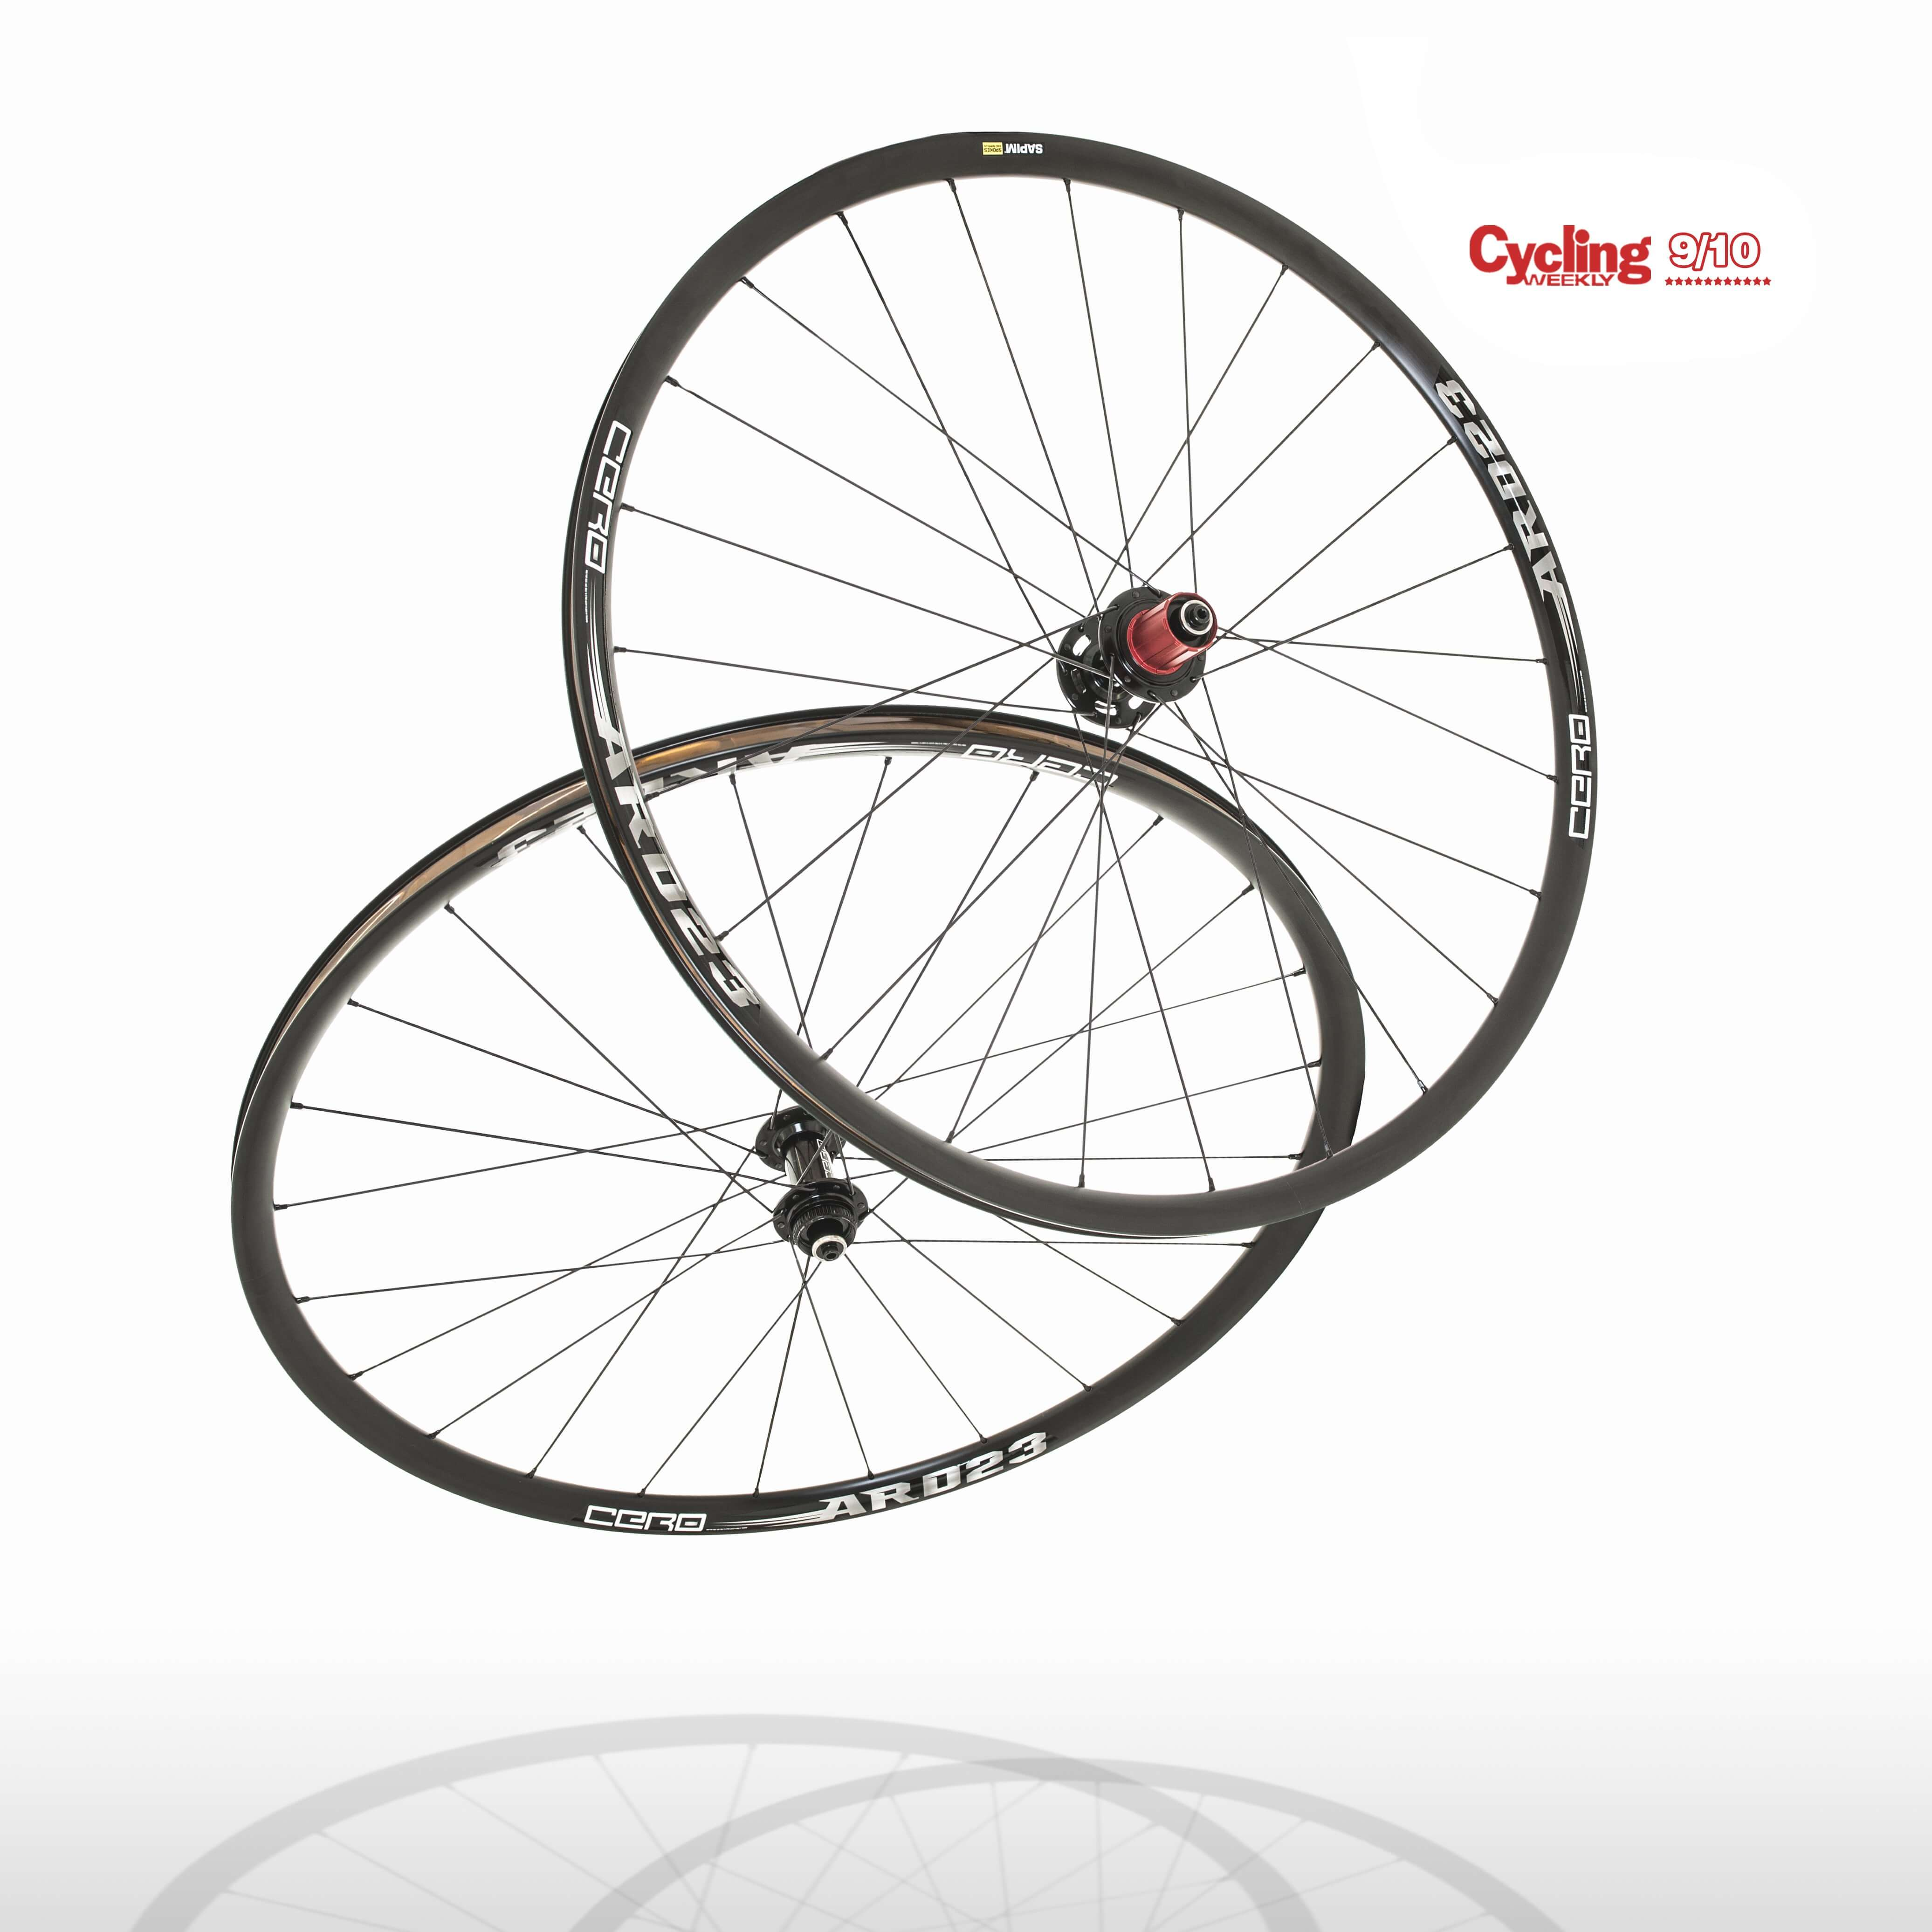 Cero ARD23 Aluminium Disc Clincher Wheelset WAS £399.99